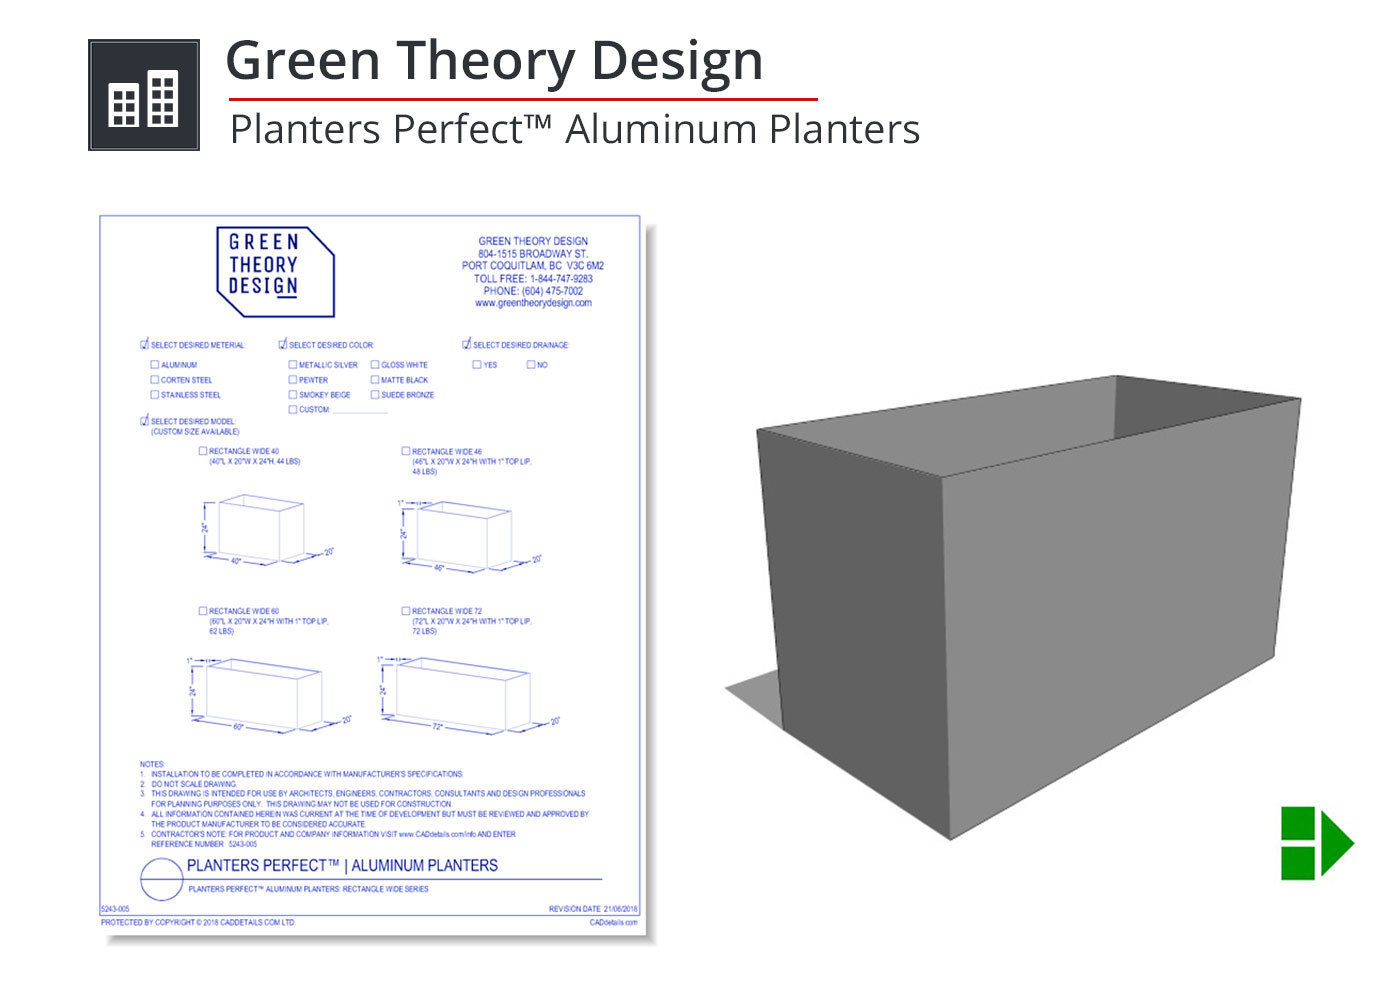 Green-Theory-Design-Planters-Perfect-Aluminum-Planters-CADdrawing (3).jpg